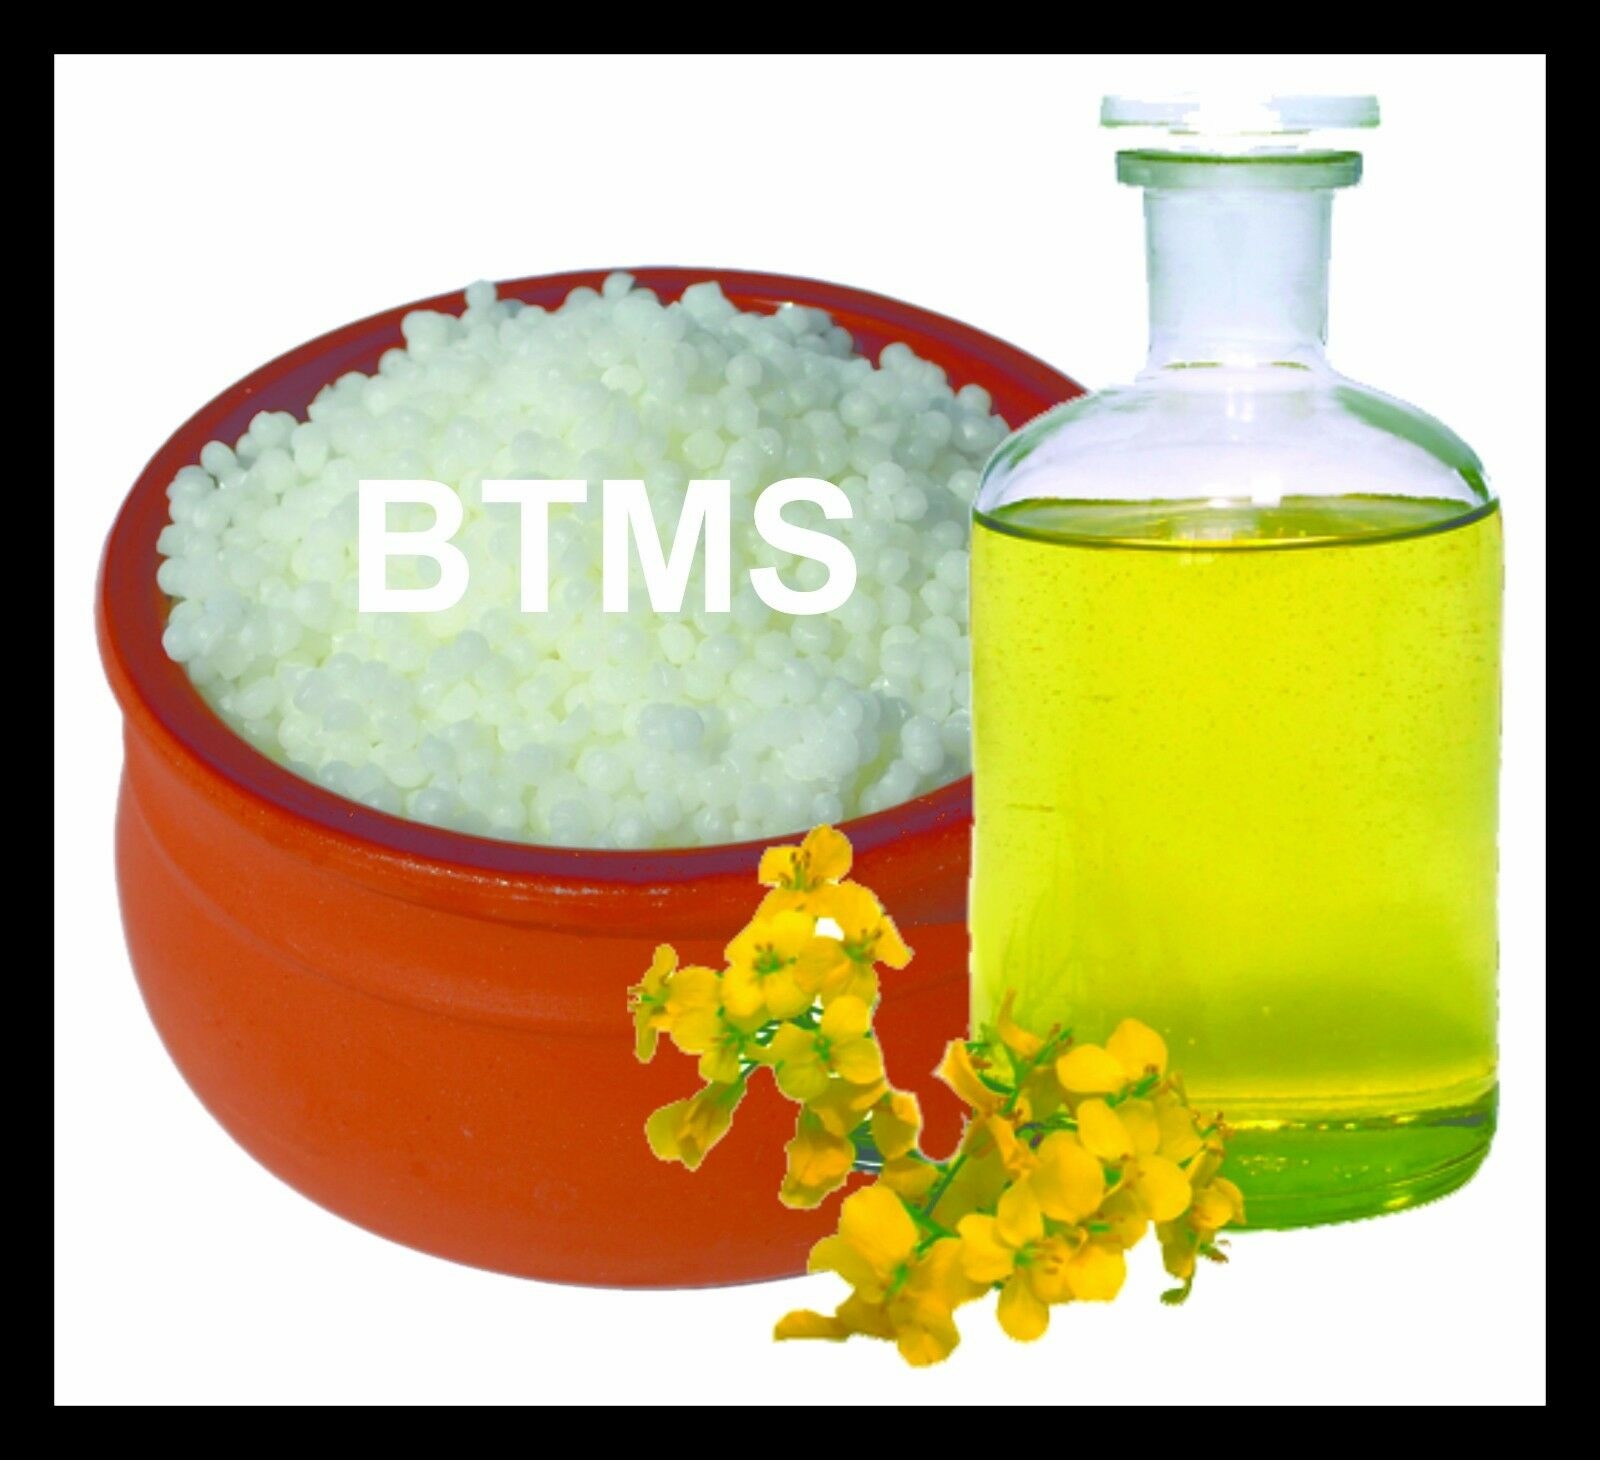 BTMS Conditioning Emulsifying Wax - Make Hair Conditioner & Creams - 100 grams